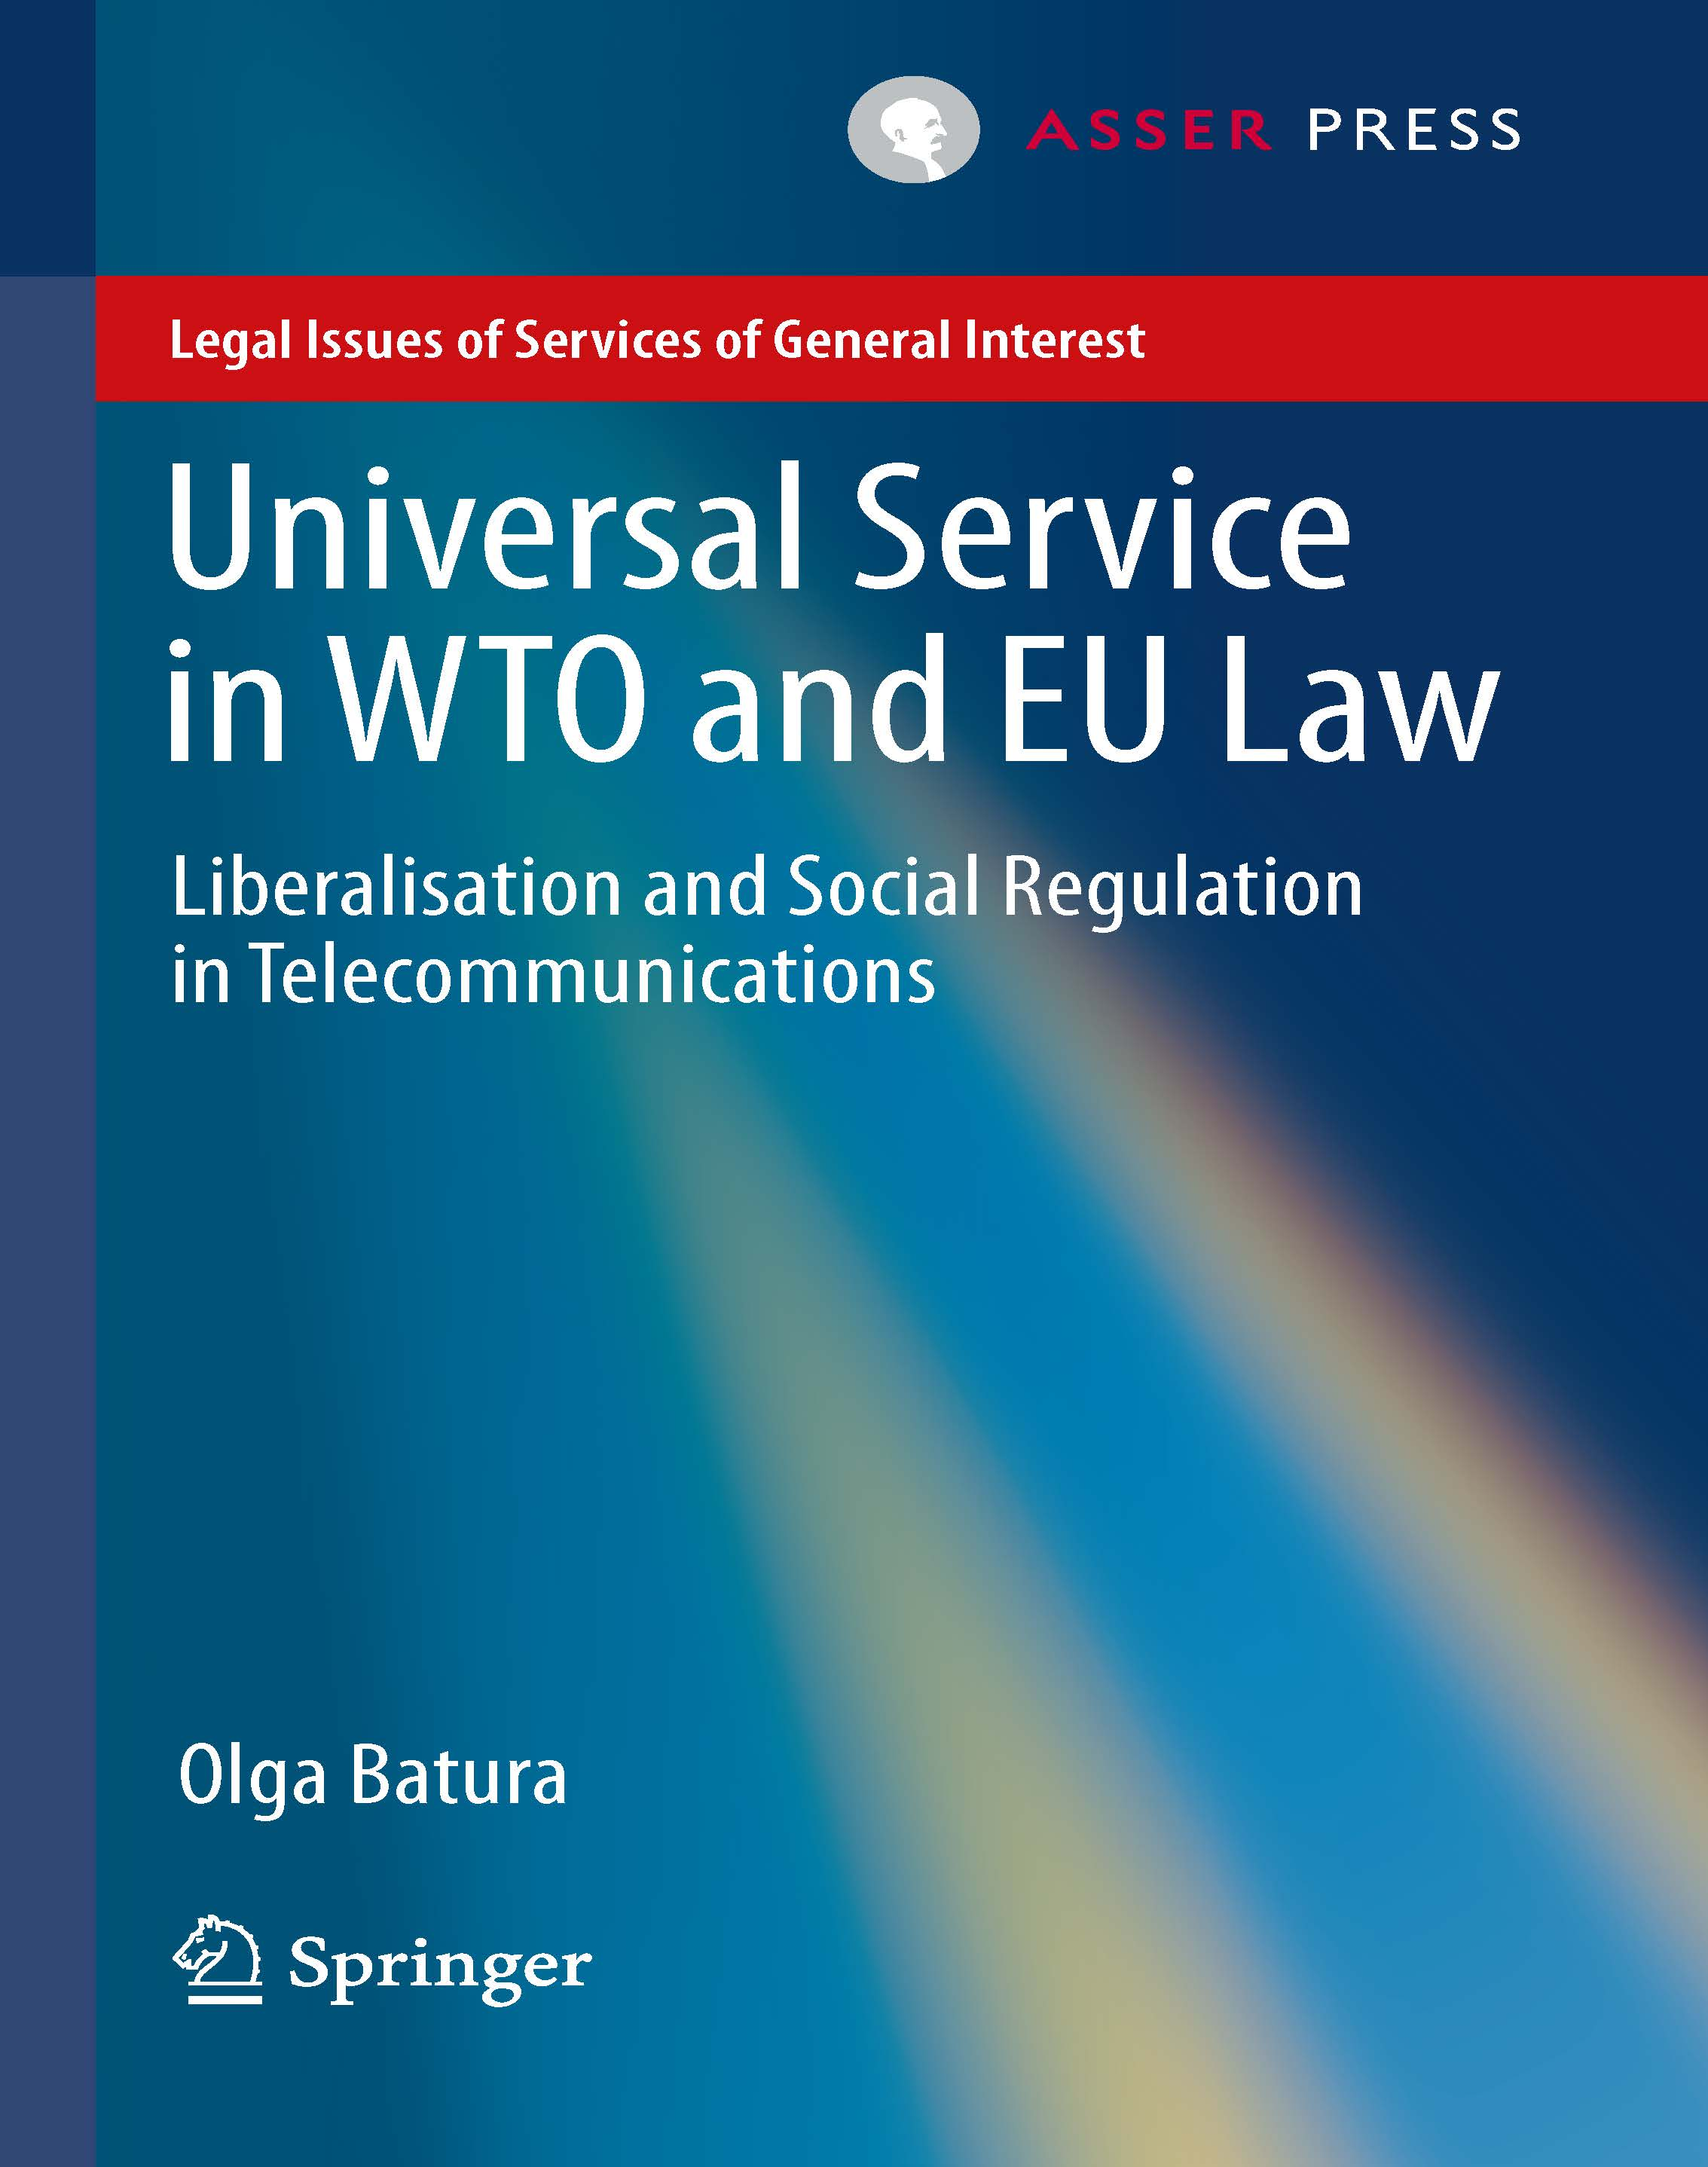 Universal service in WTO and EU law: Liberalisation and social regulation in telecommunications